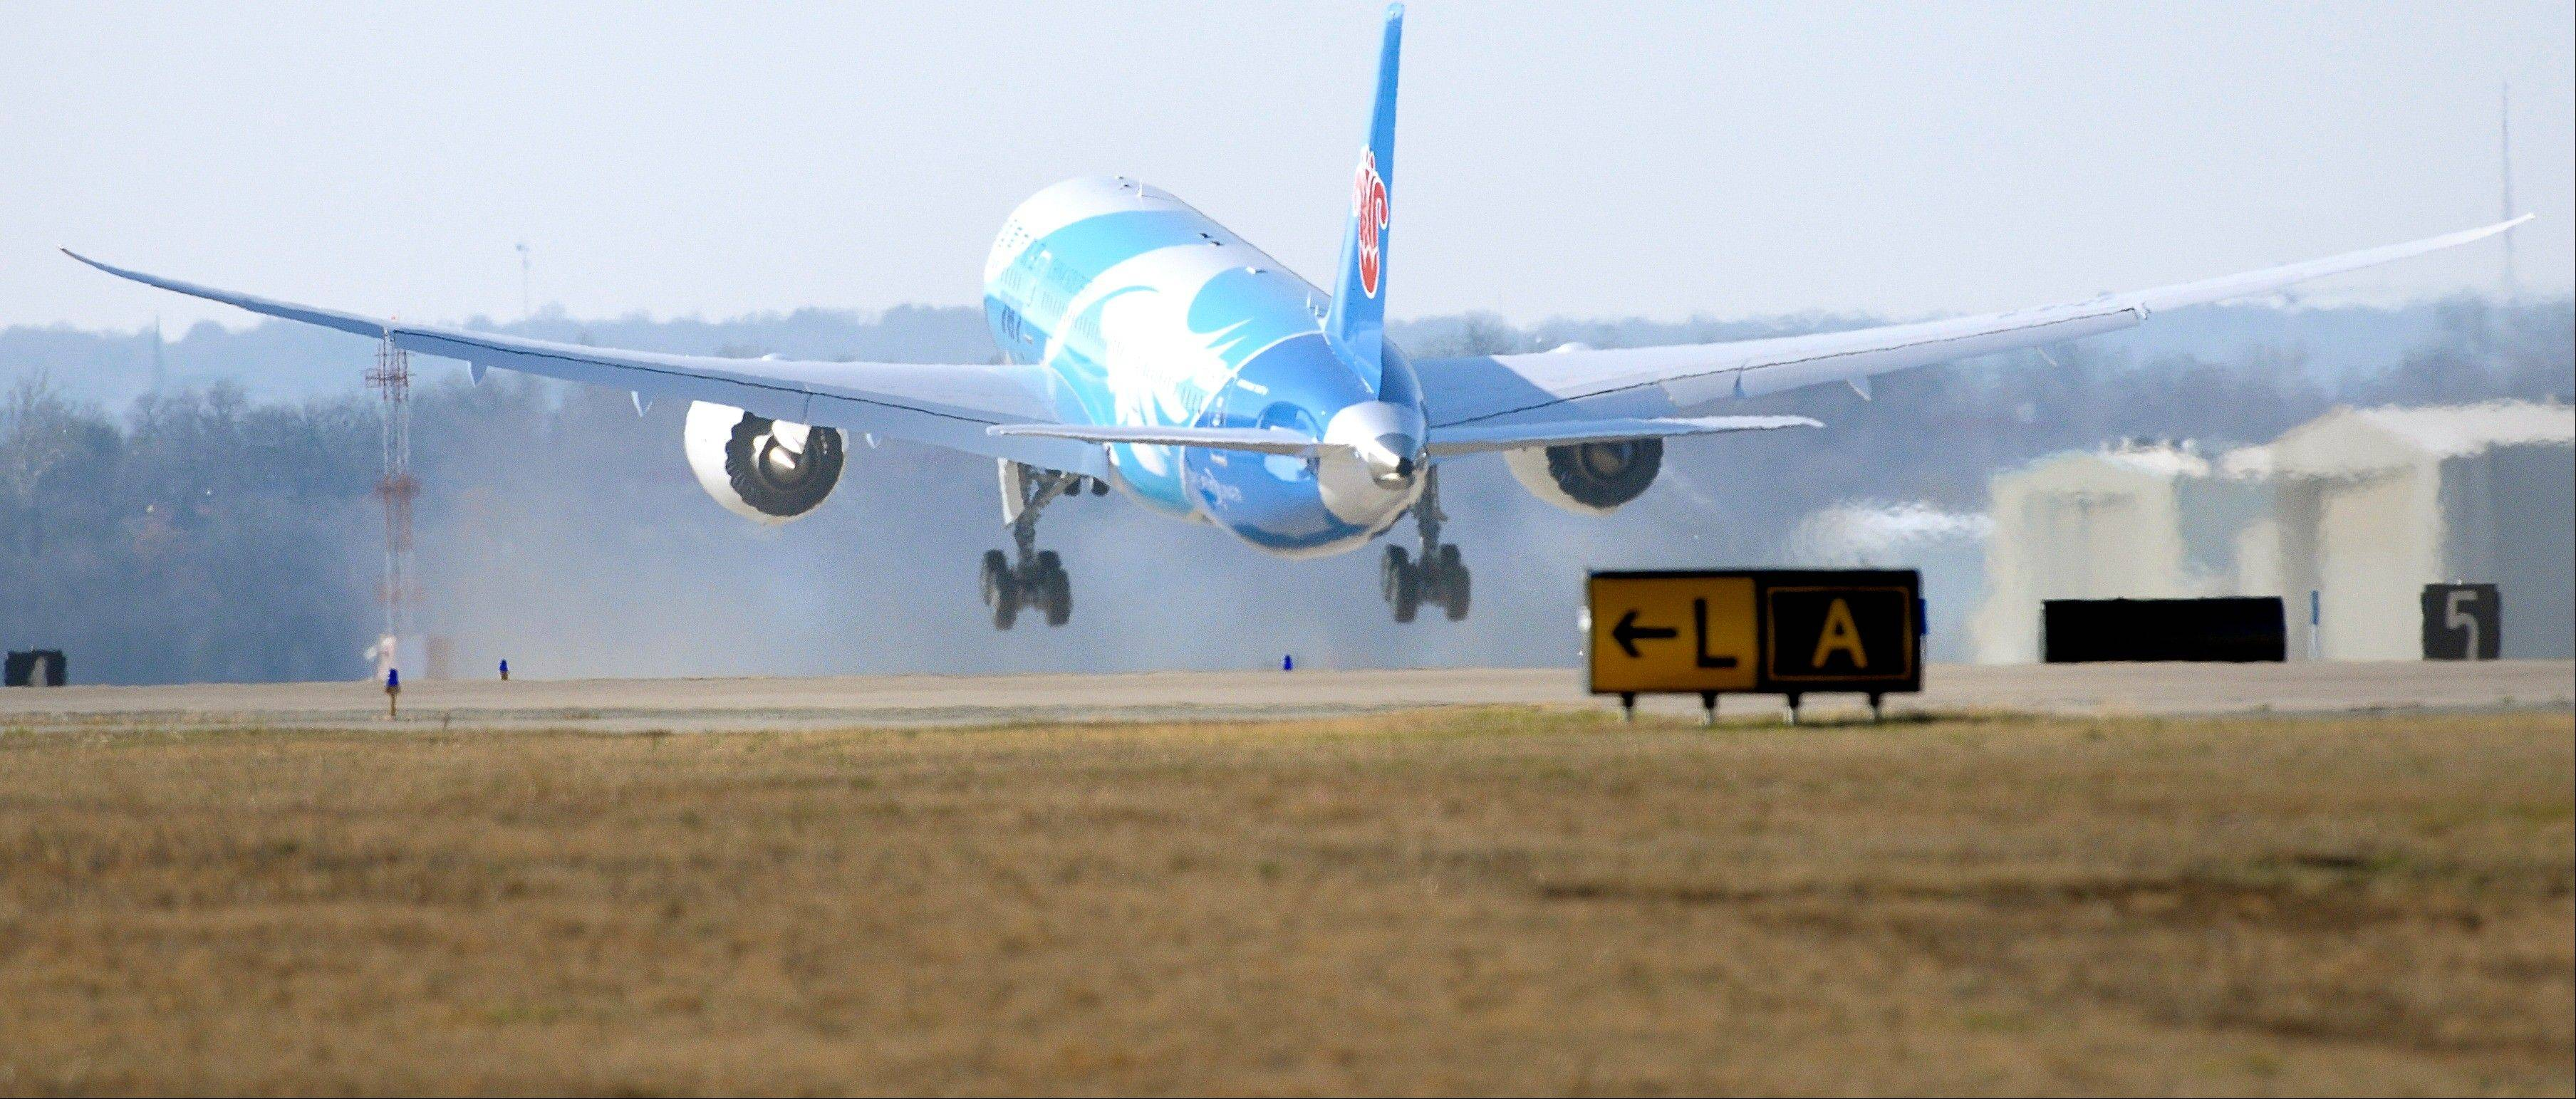 A Boeing 787 jet that has been at Meacham International Airport in Fort Worth, Texas for about a month while being painted for China Southern, takes off Thursday.